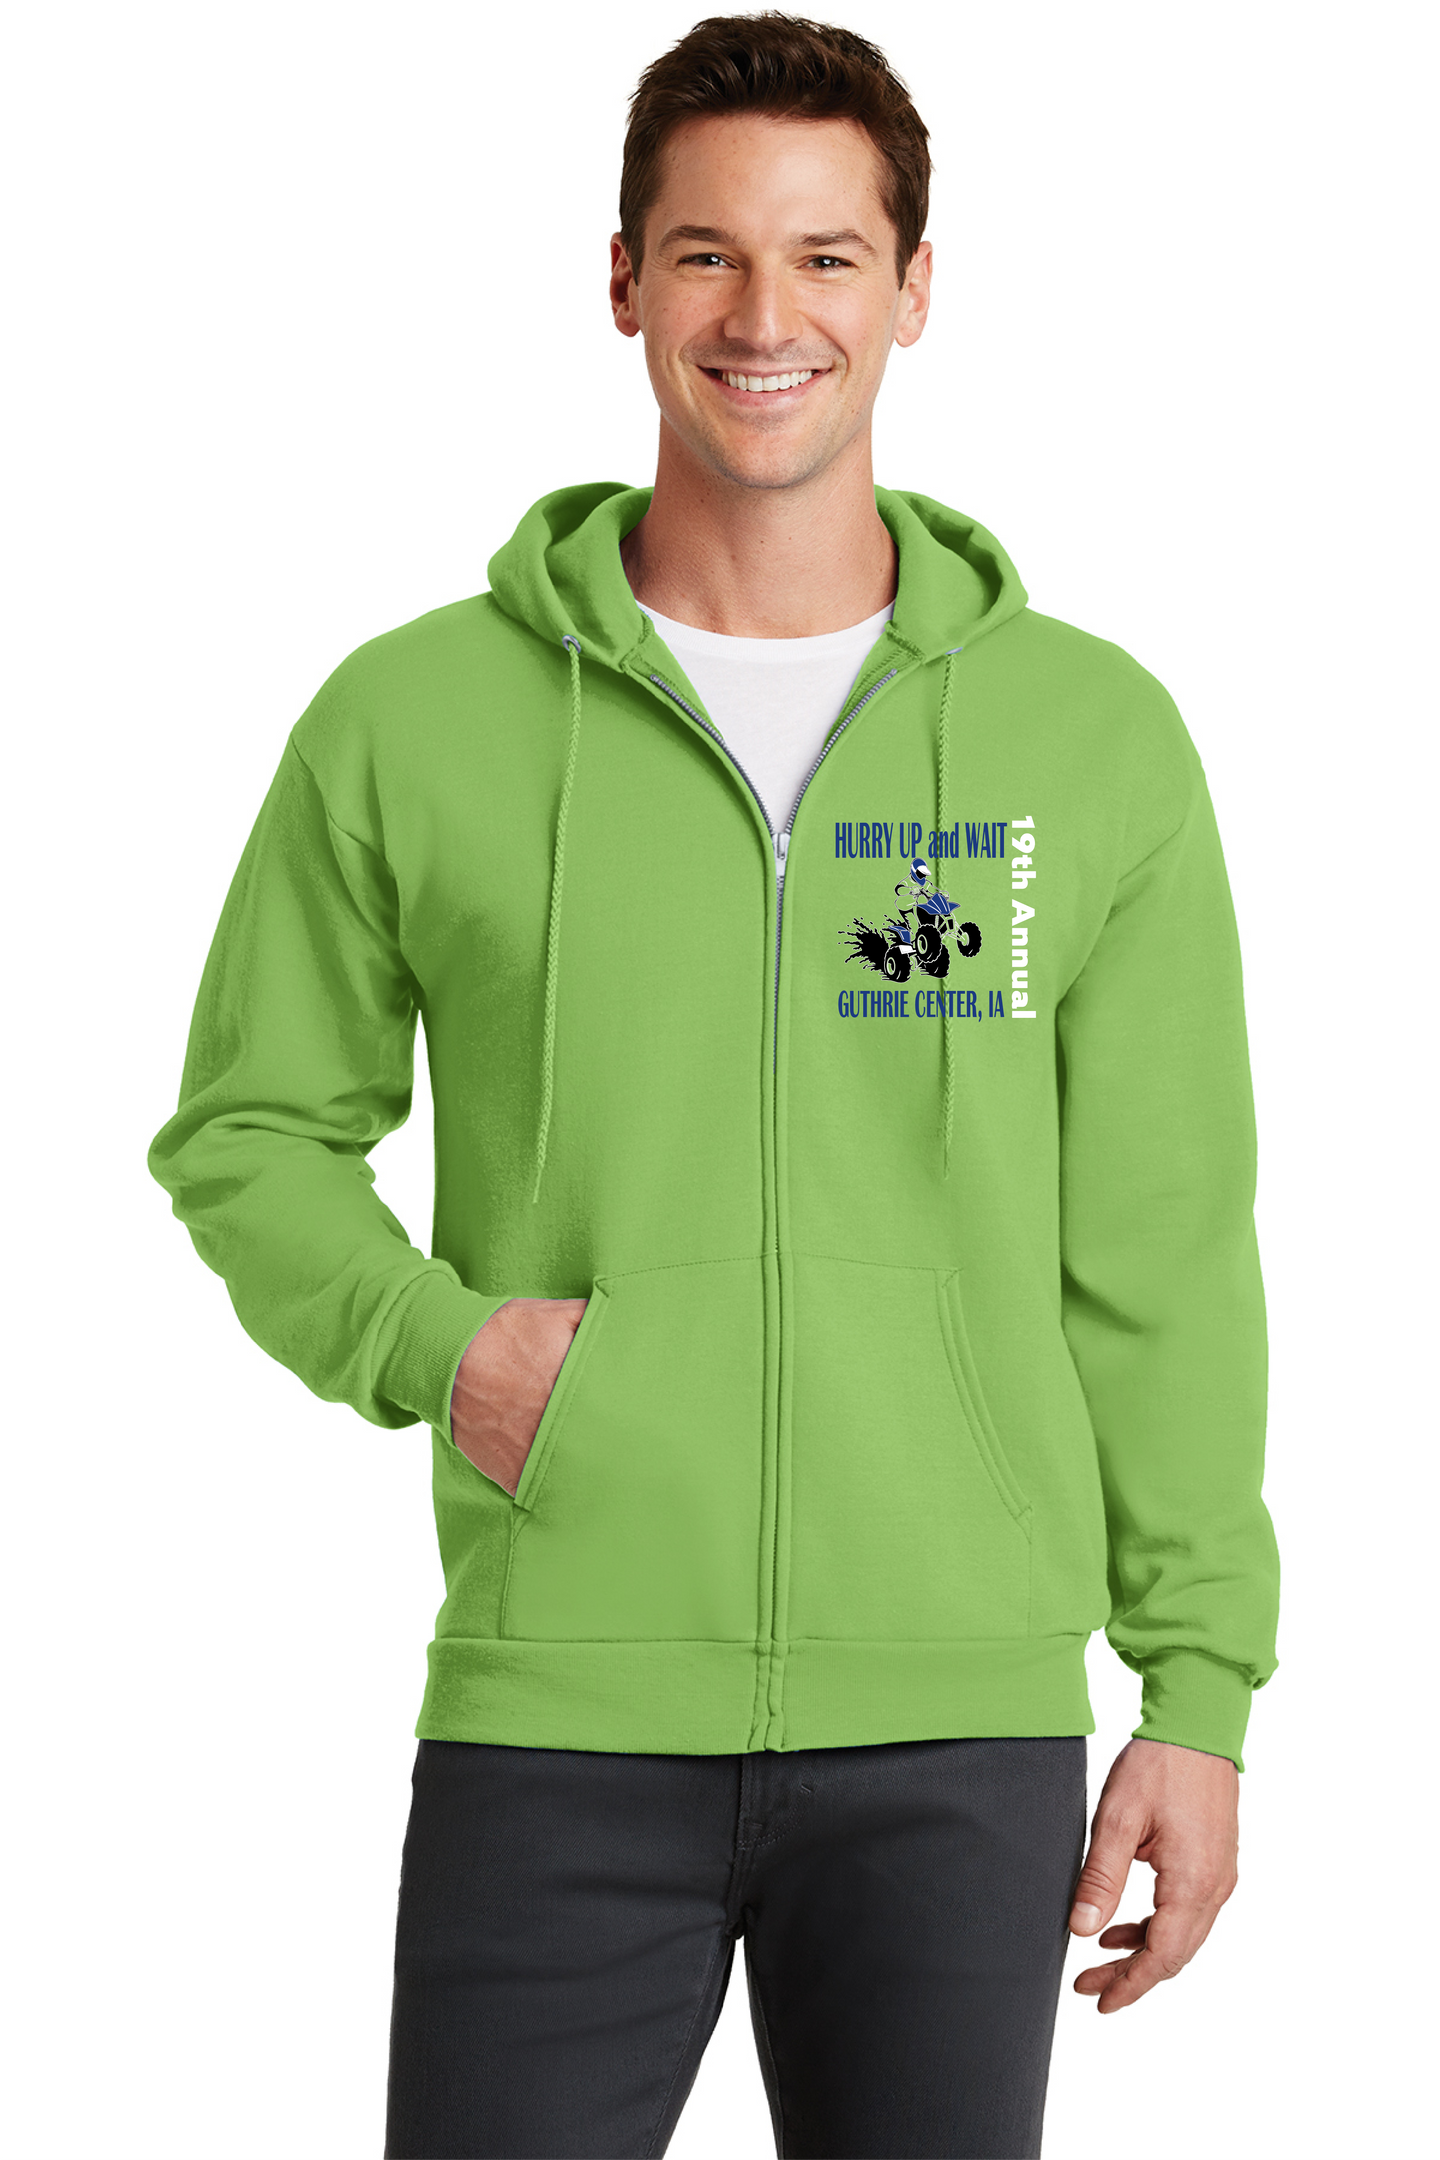 Hurry Up and Wait--Port & Company® - Core Fleece Full-Zip Hooded Sweatshirt-PC78ZH